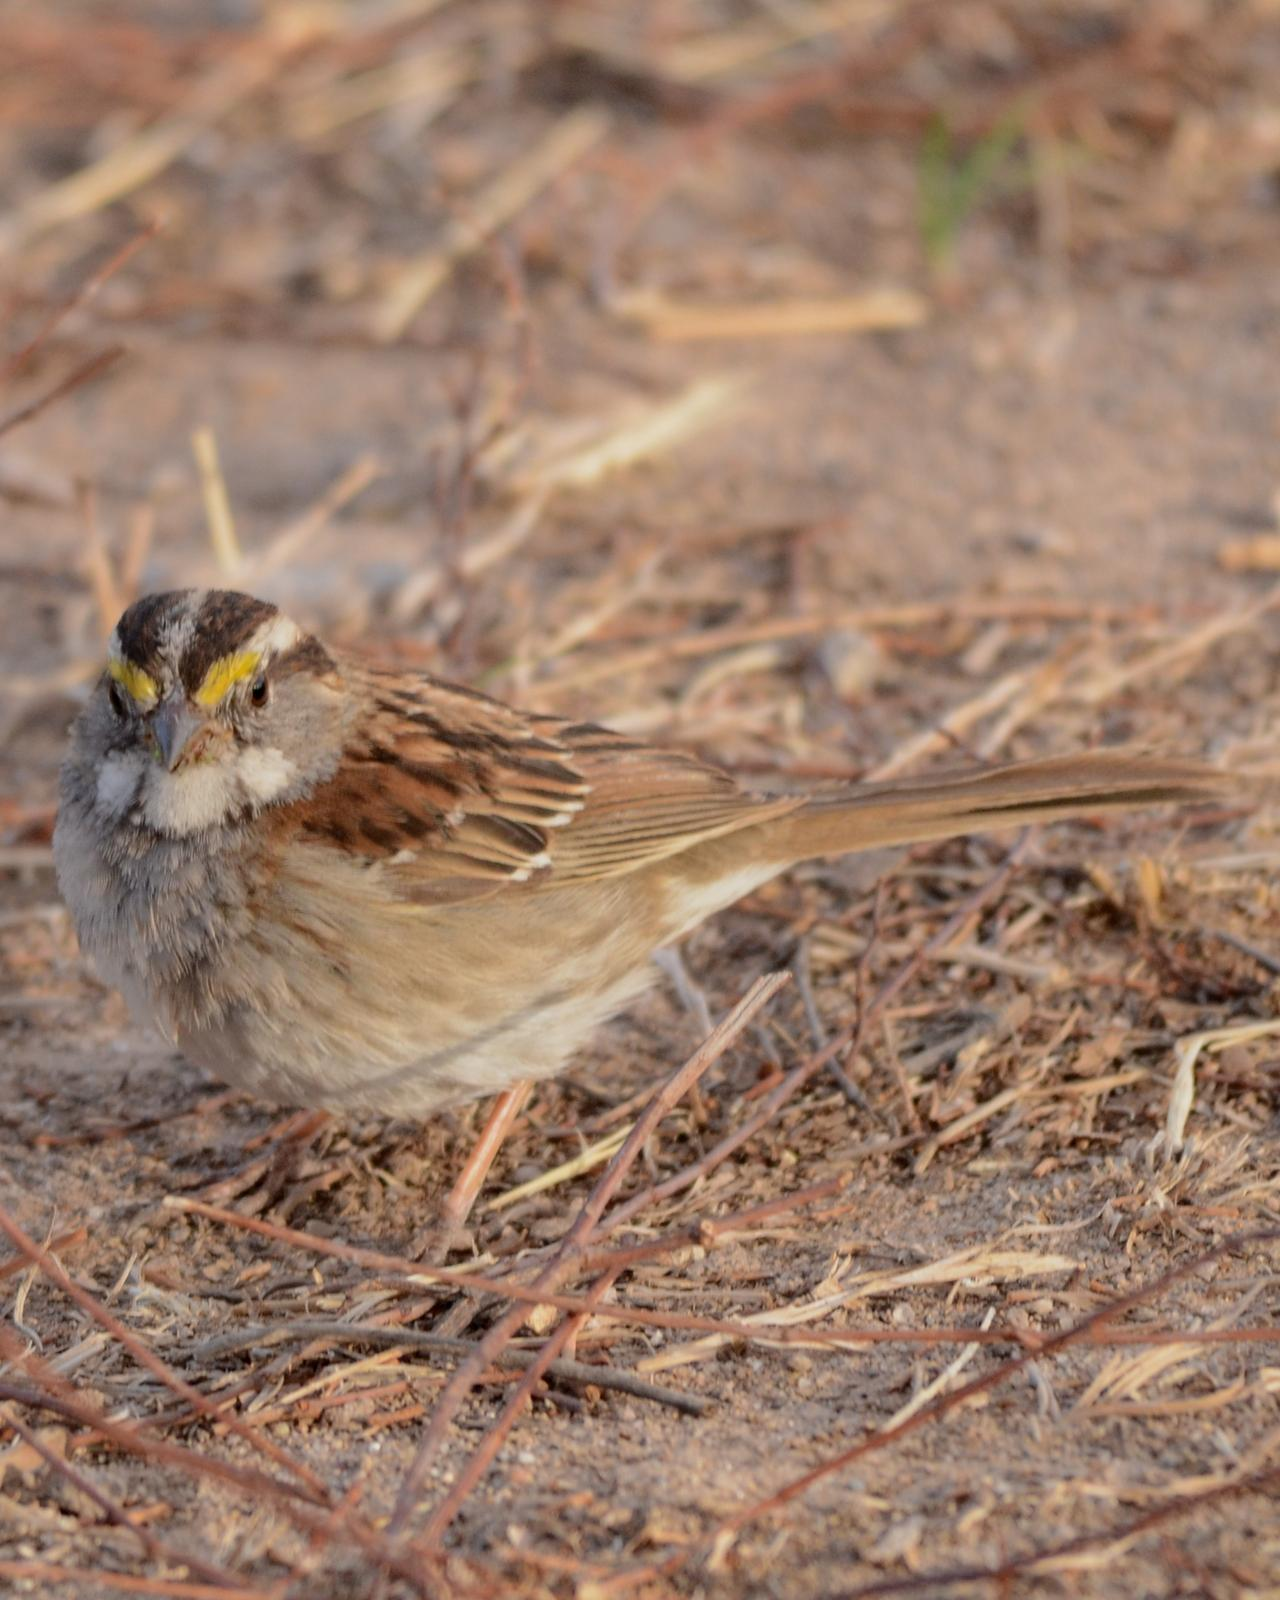 White-throated Sparrow Photo by Dan Belcher